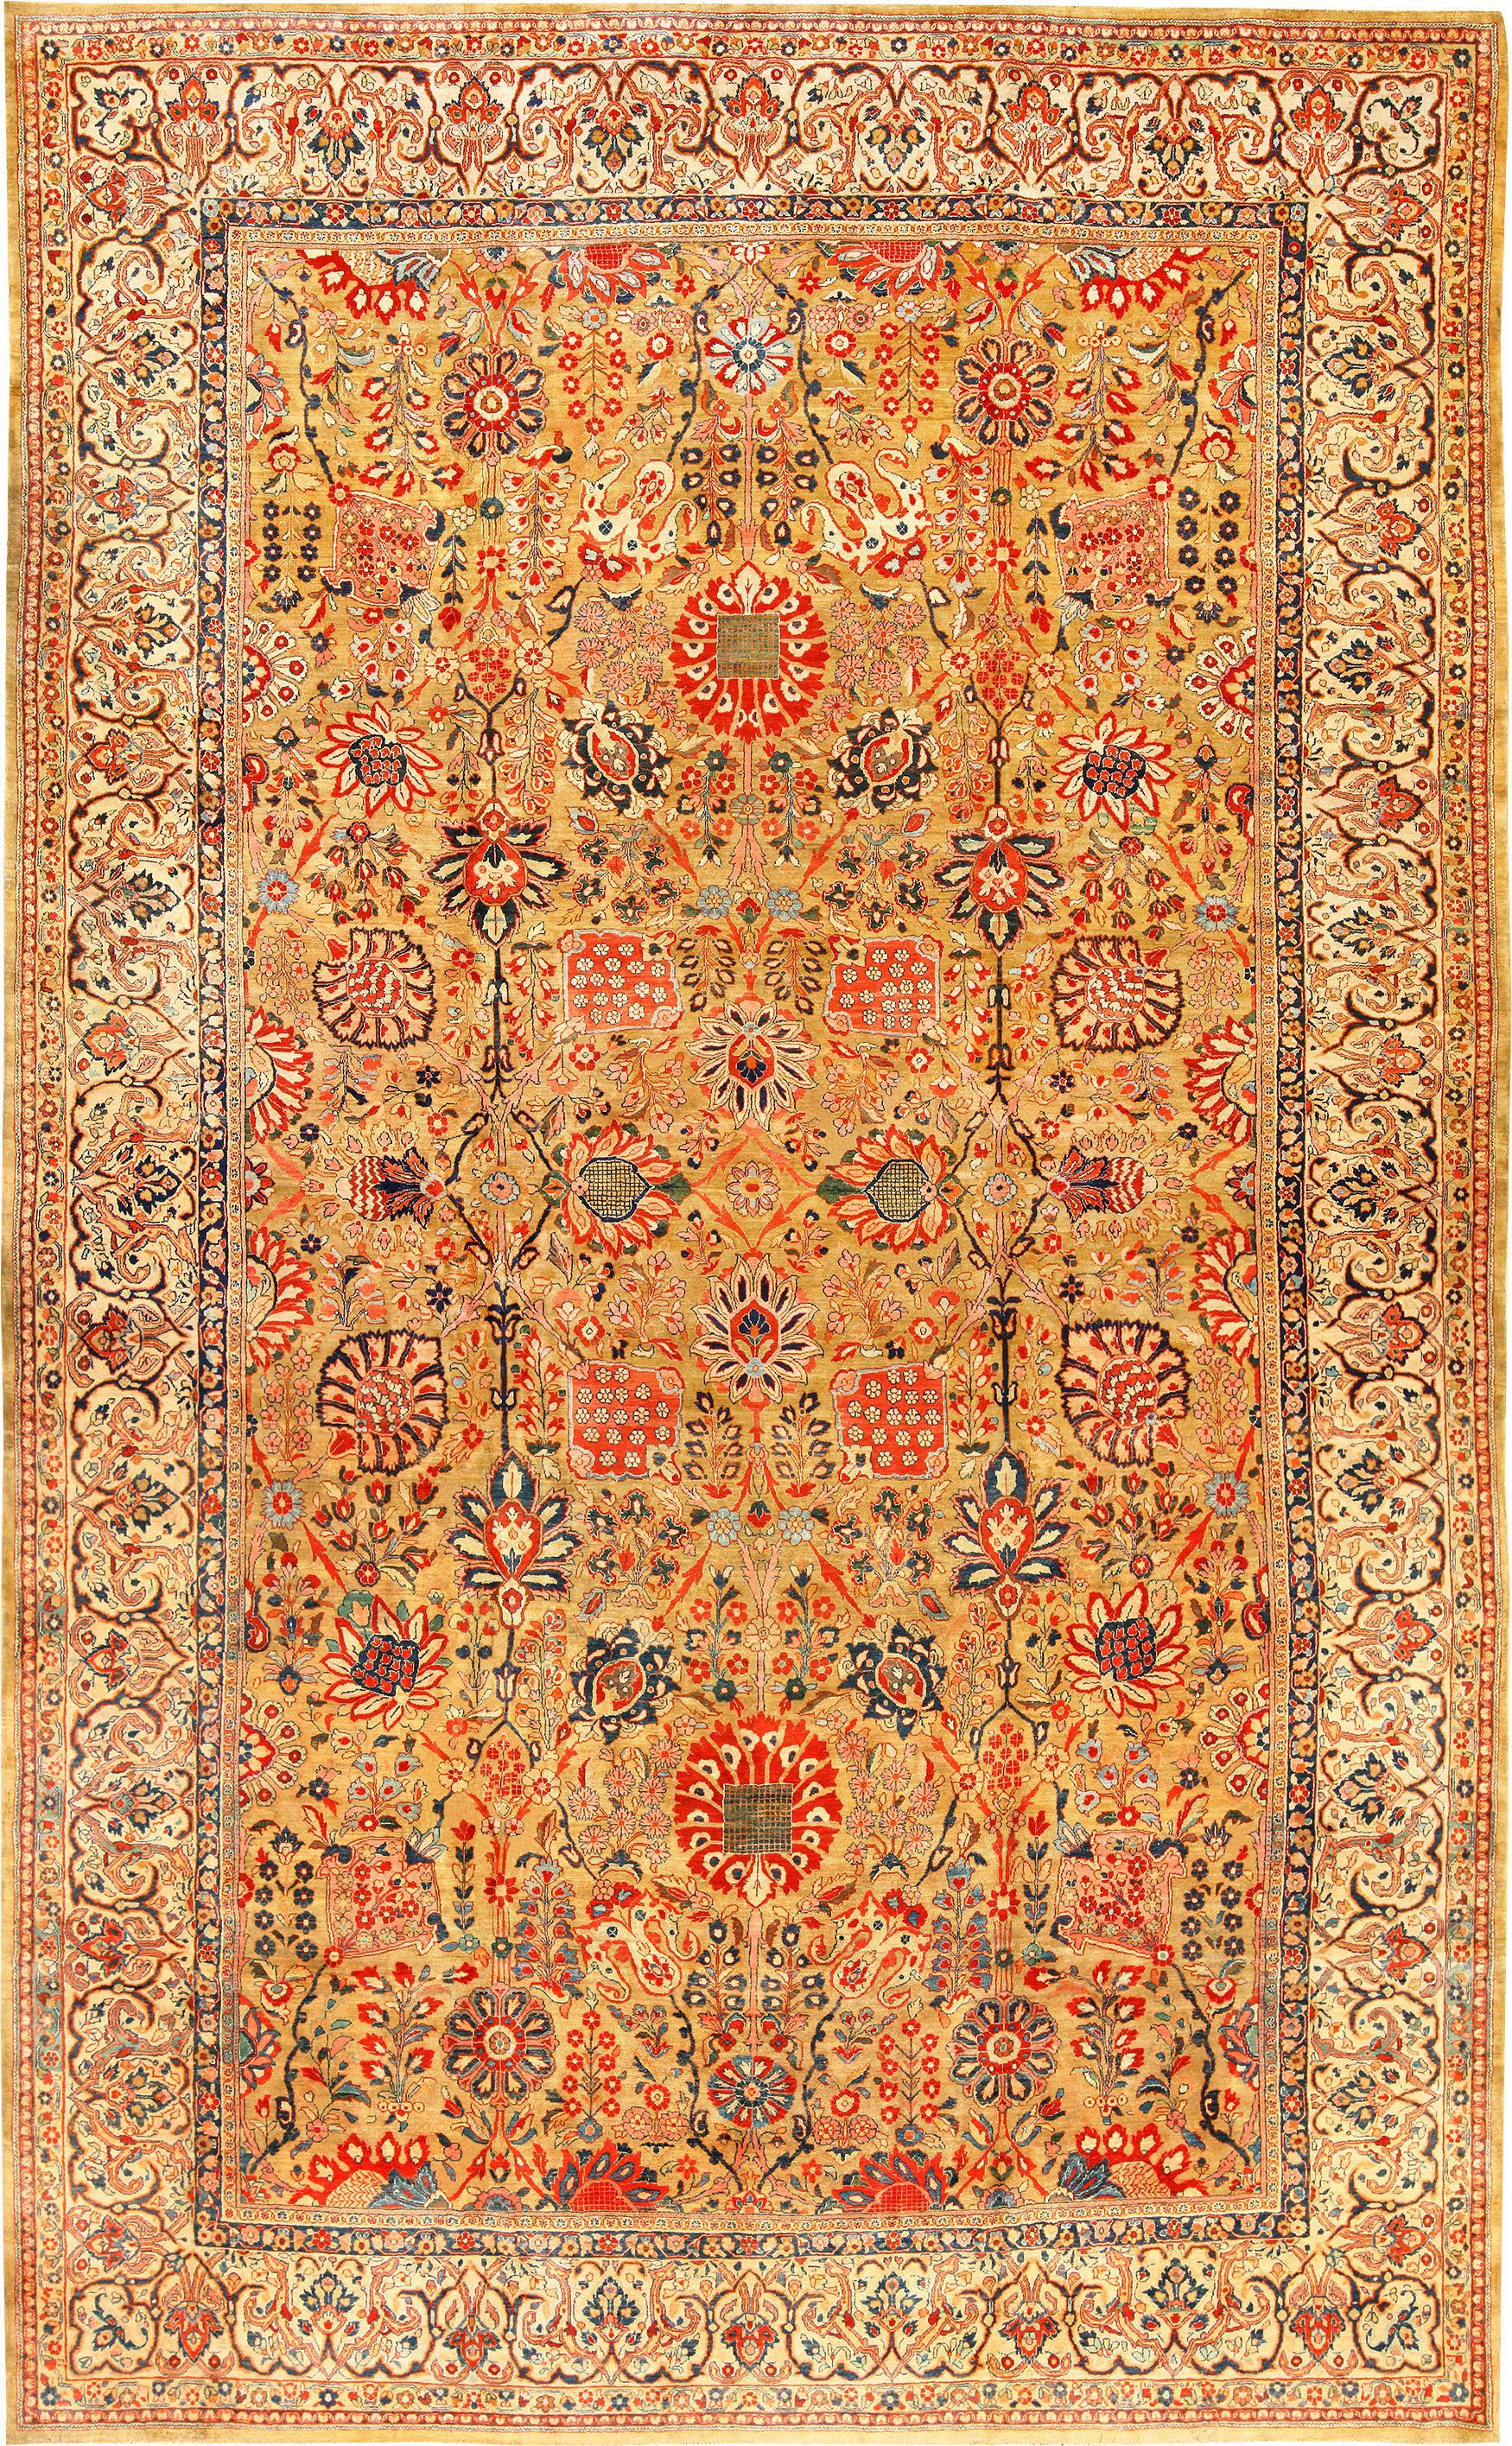 Gold Background Antique Persian Sarouk Farahan Rug Price 86 000 00 Size 13 Ft X 20 6 In 3 96 M 25